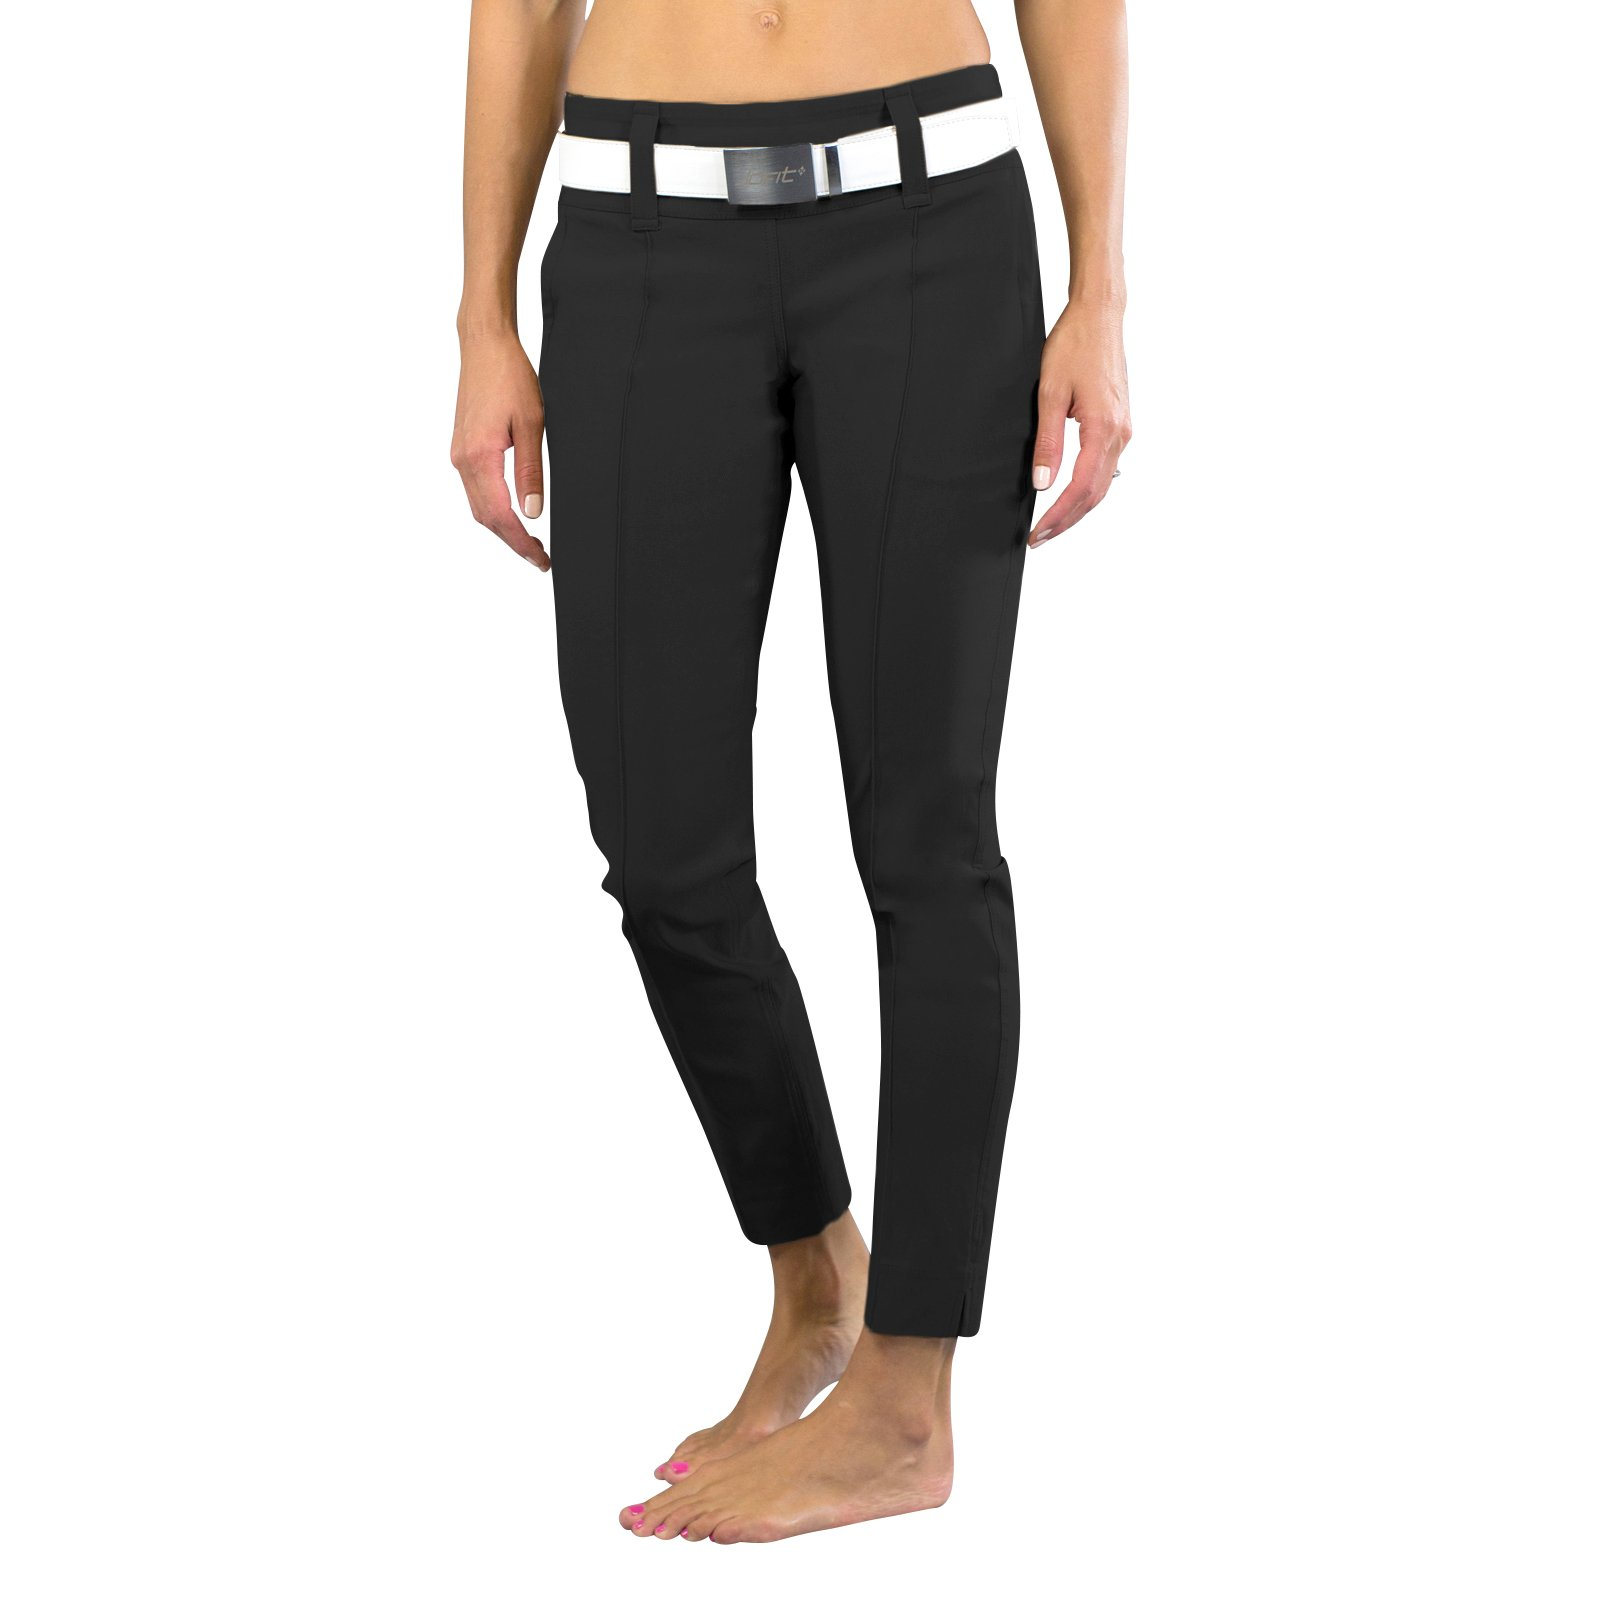 Jofit Women's Slimmer Crop Pants, Black, Large by Jofit